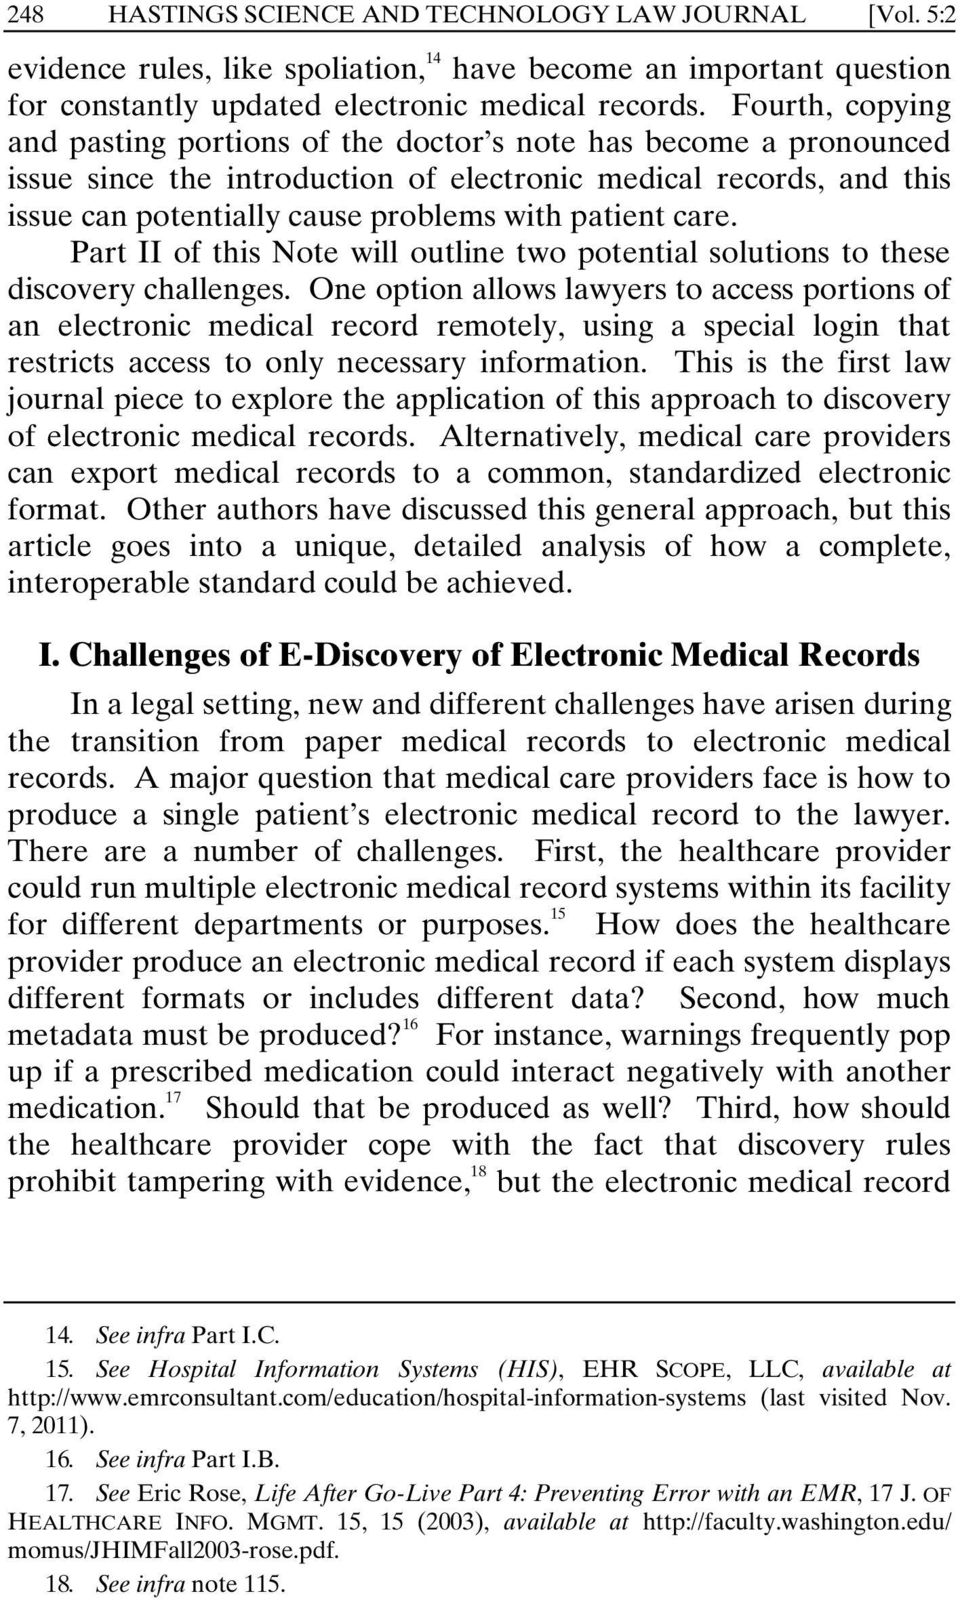 patient care. Part II of this Note will outline two potential solutions to these discovery challenges.